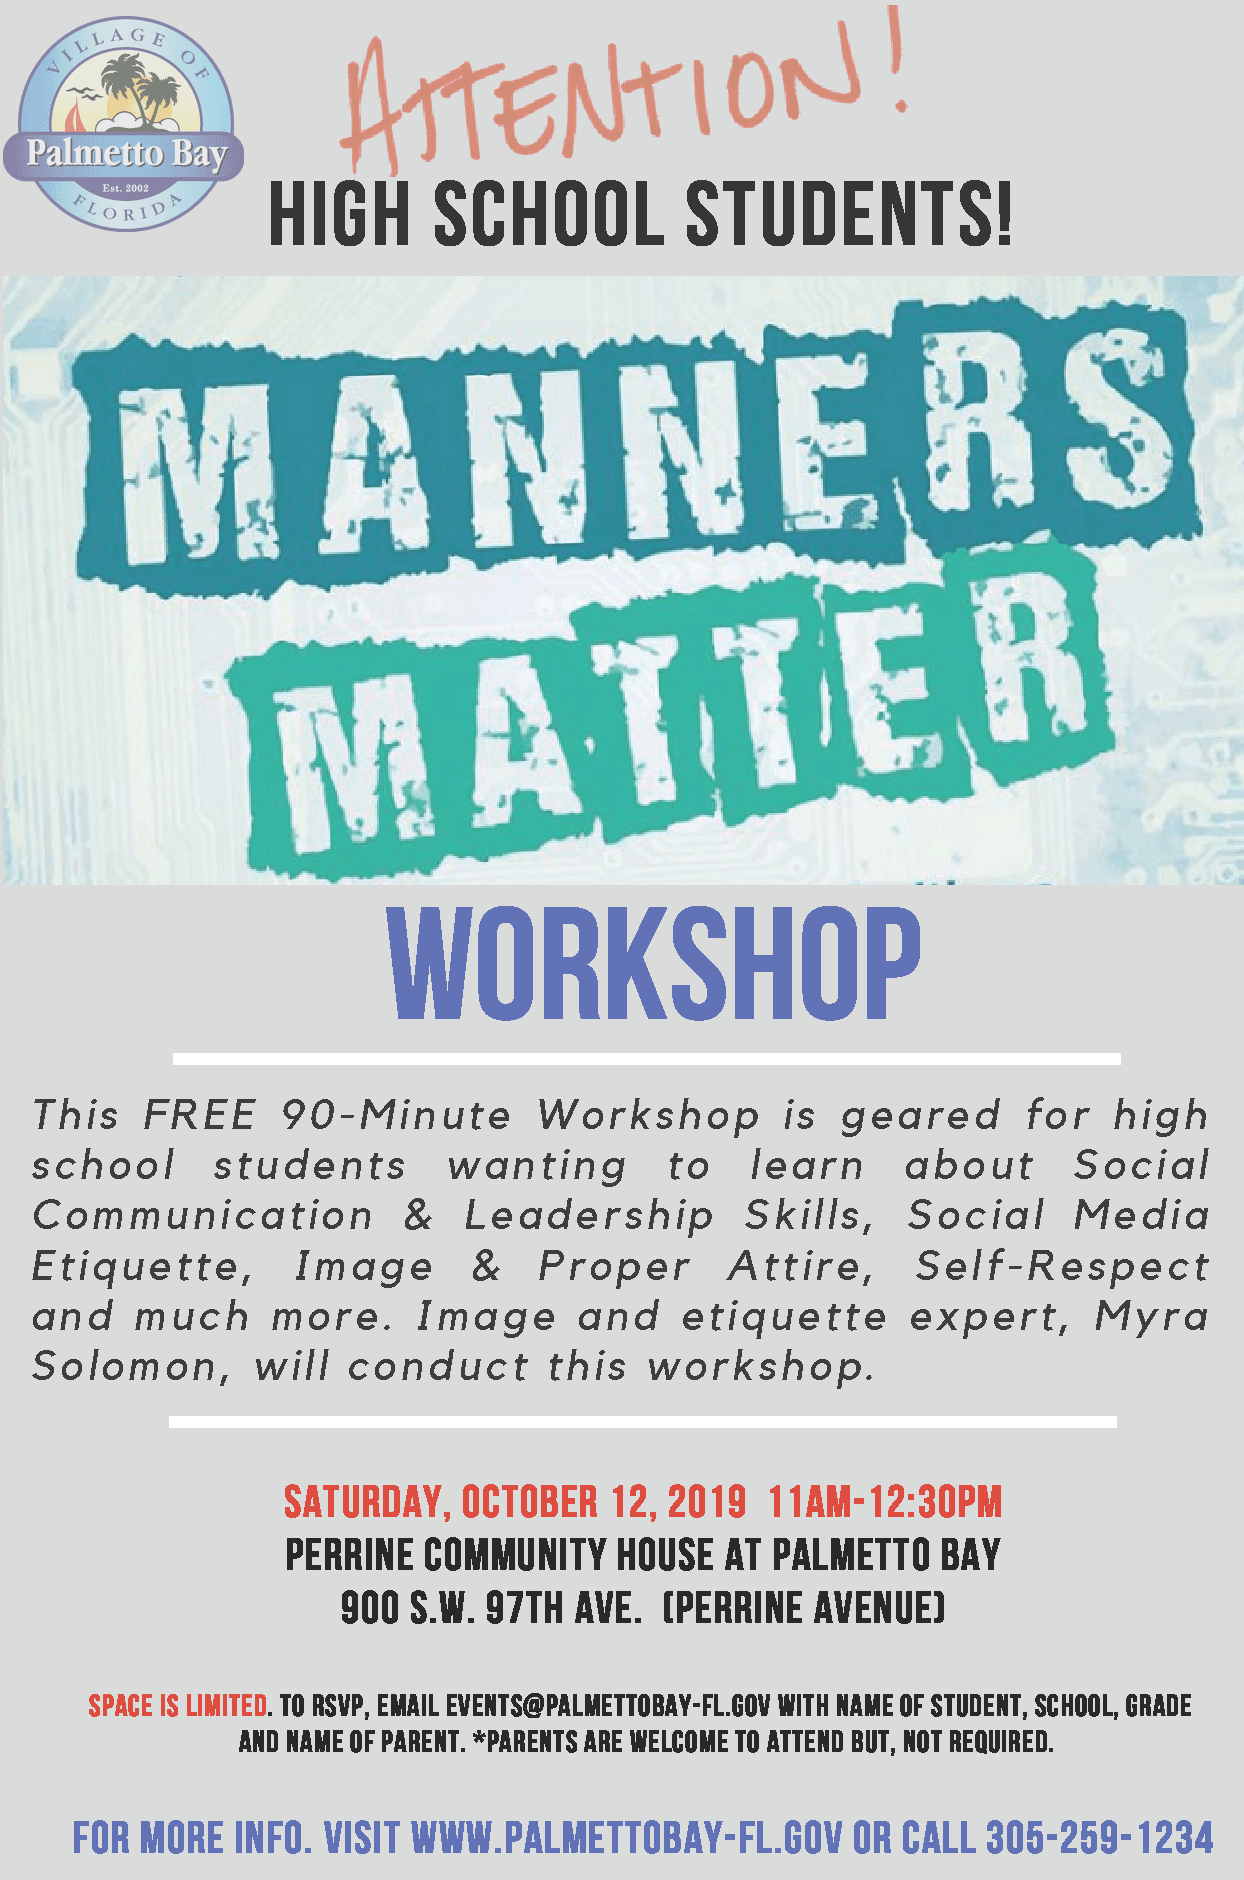 Manners Matter workshop for High School Students, Saturday, October 12 at PCH from 11am -12:30pm